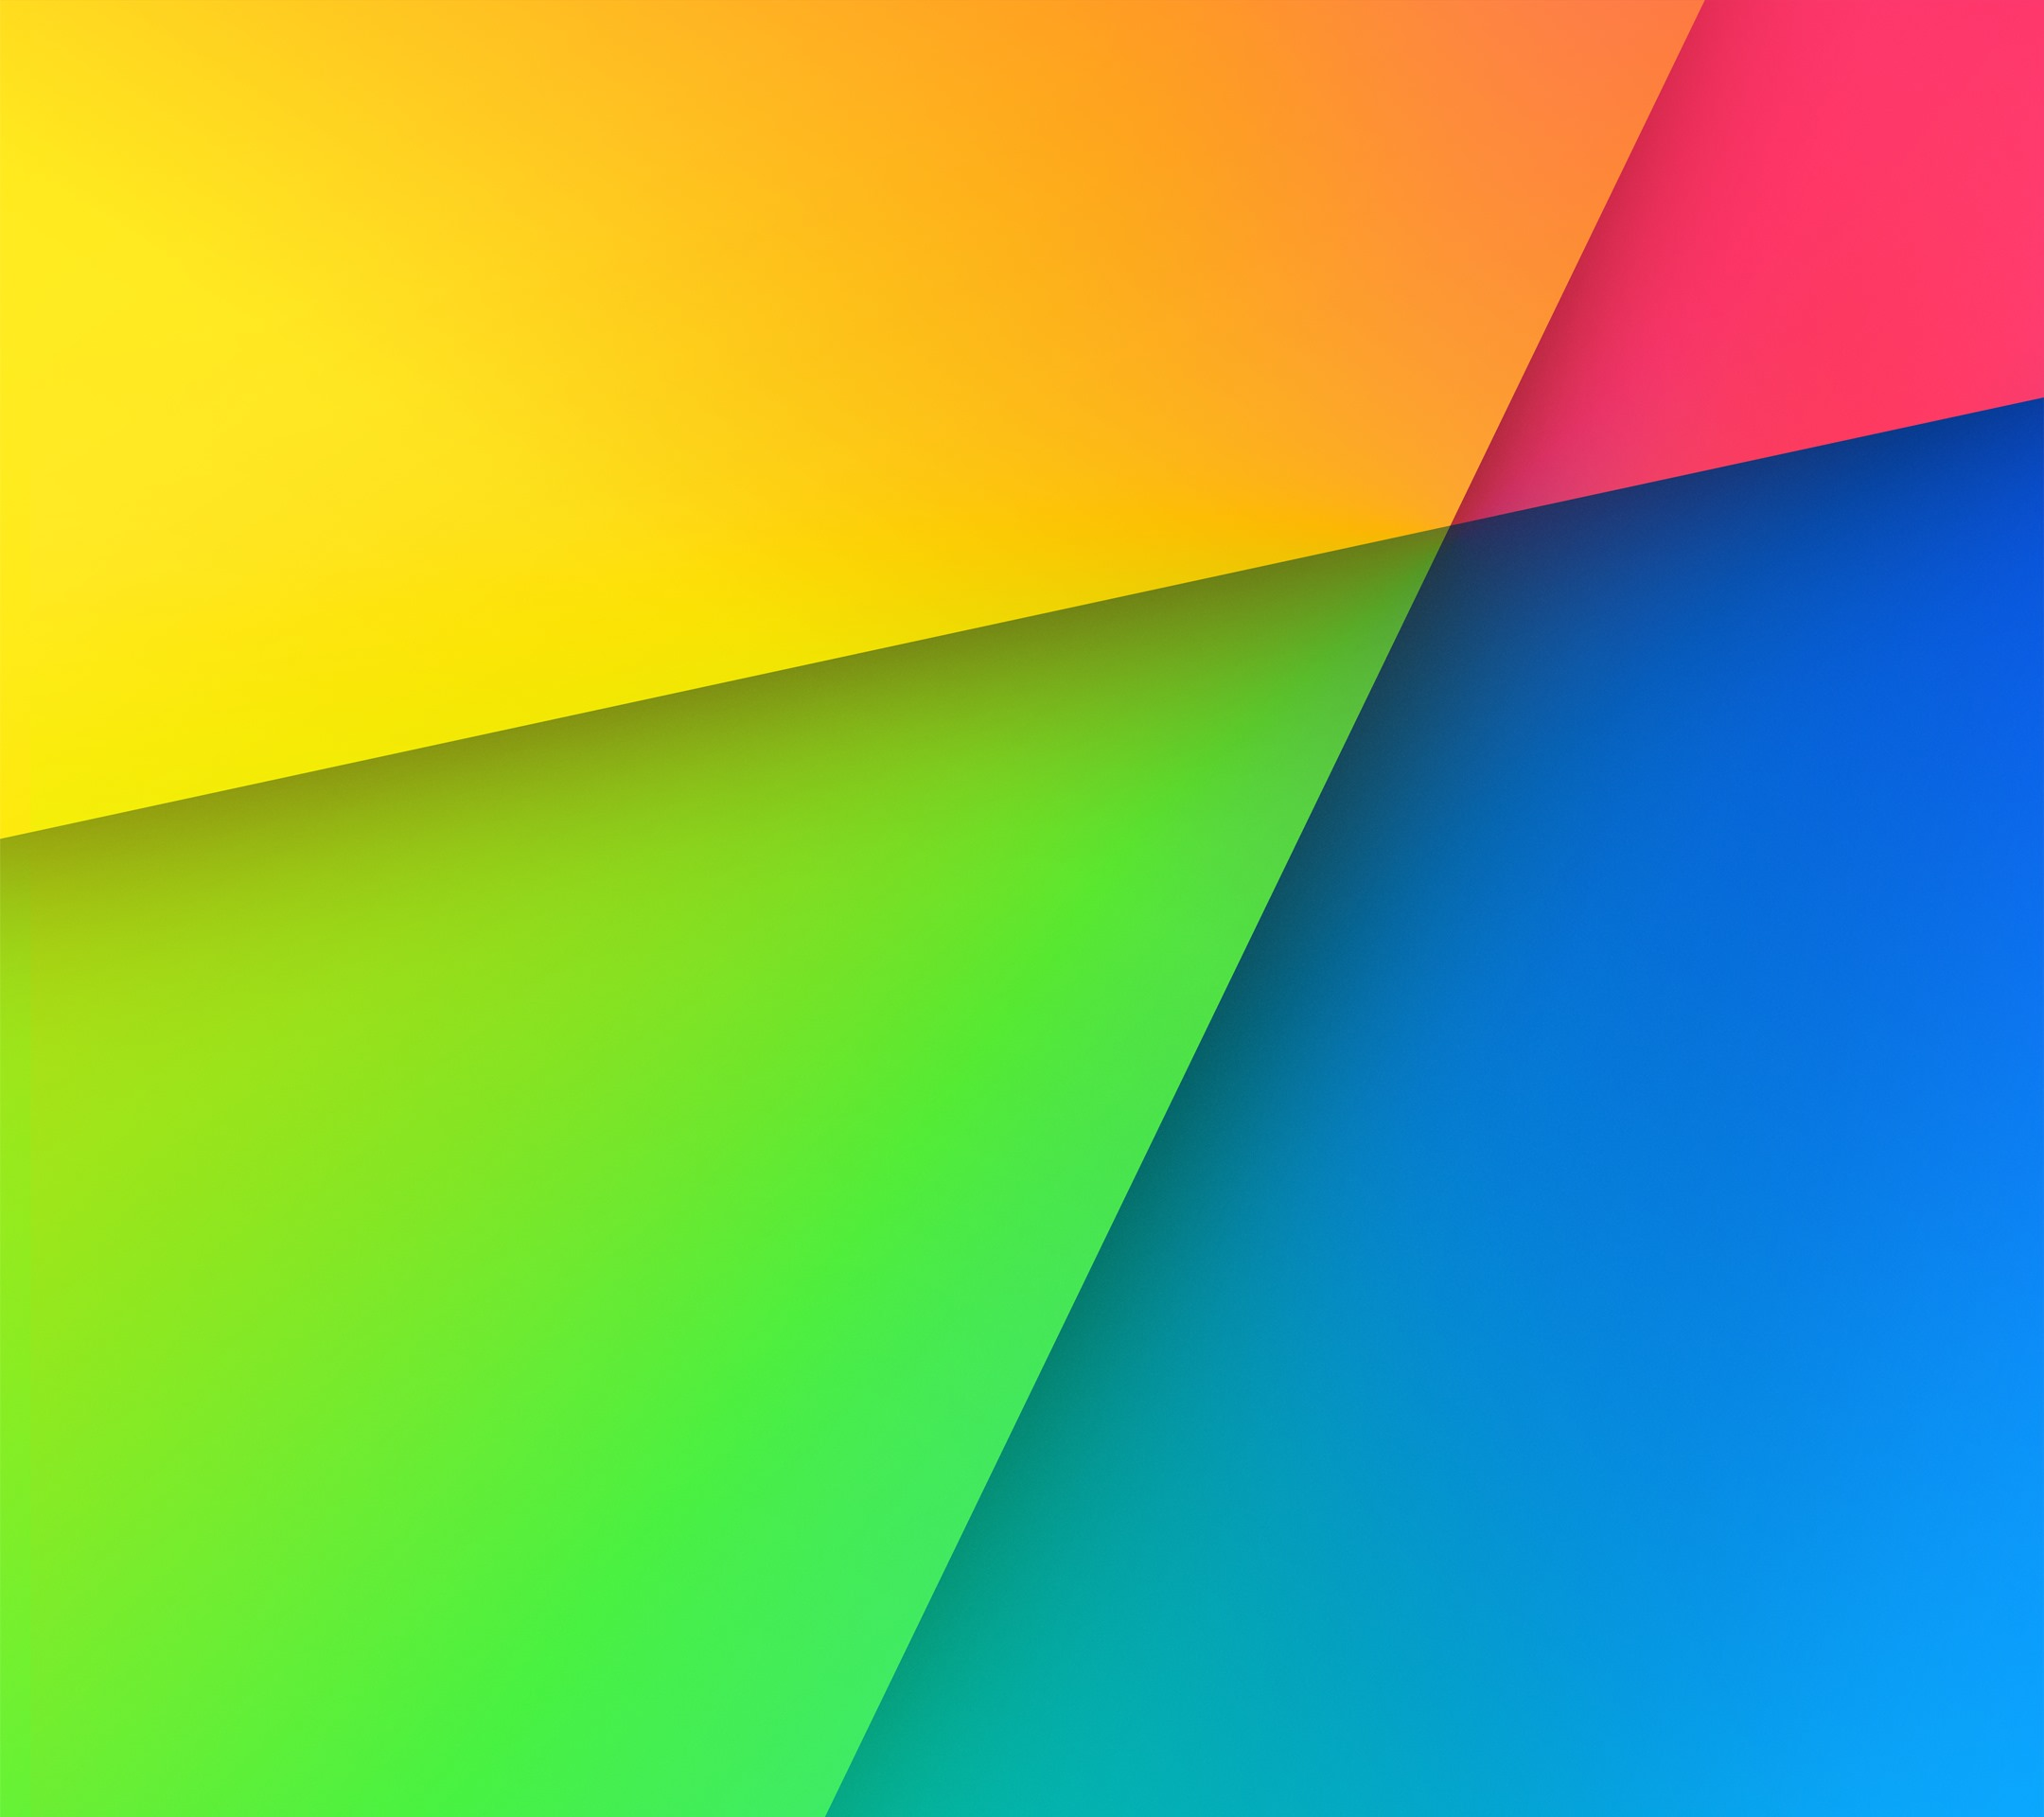 nexus 7 hd wallpaper